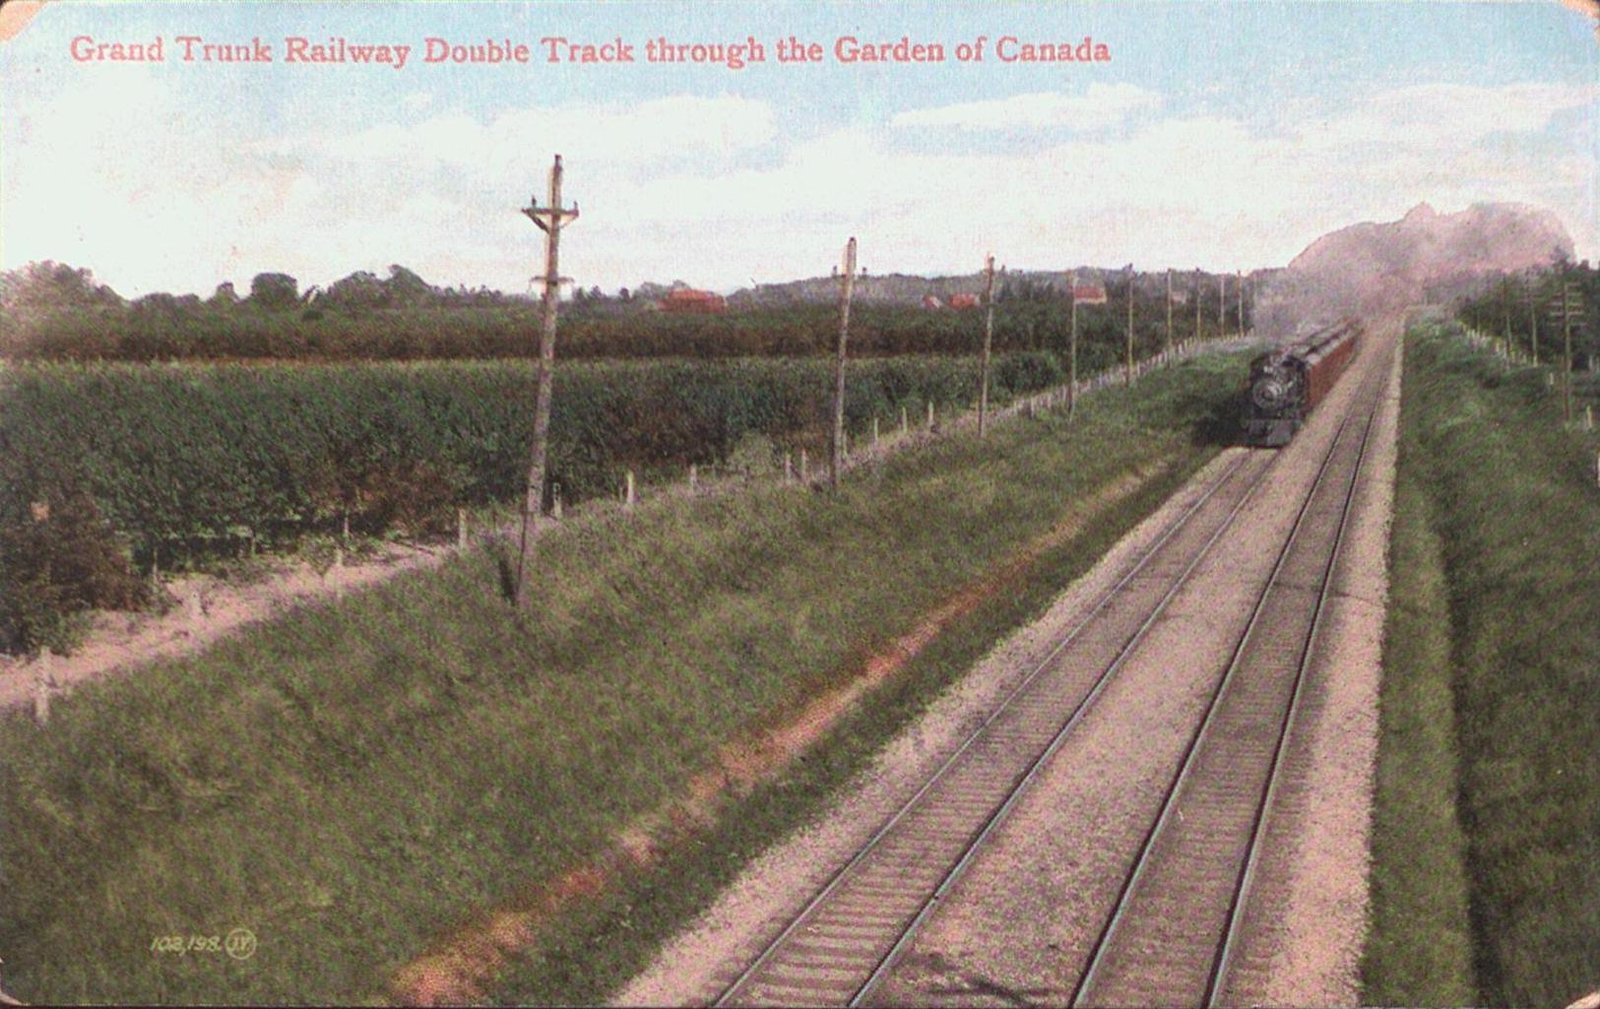 Grand Trunk Railway Double Track